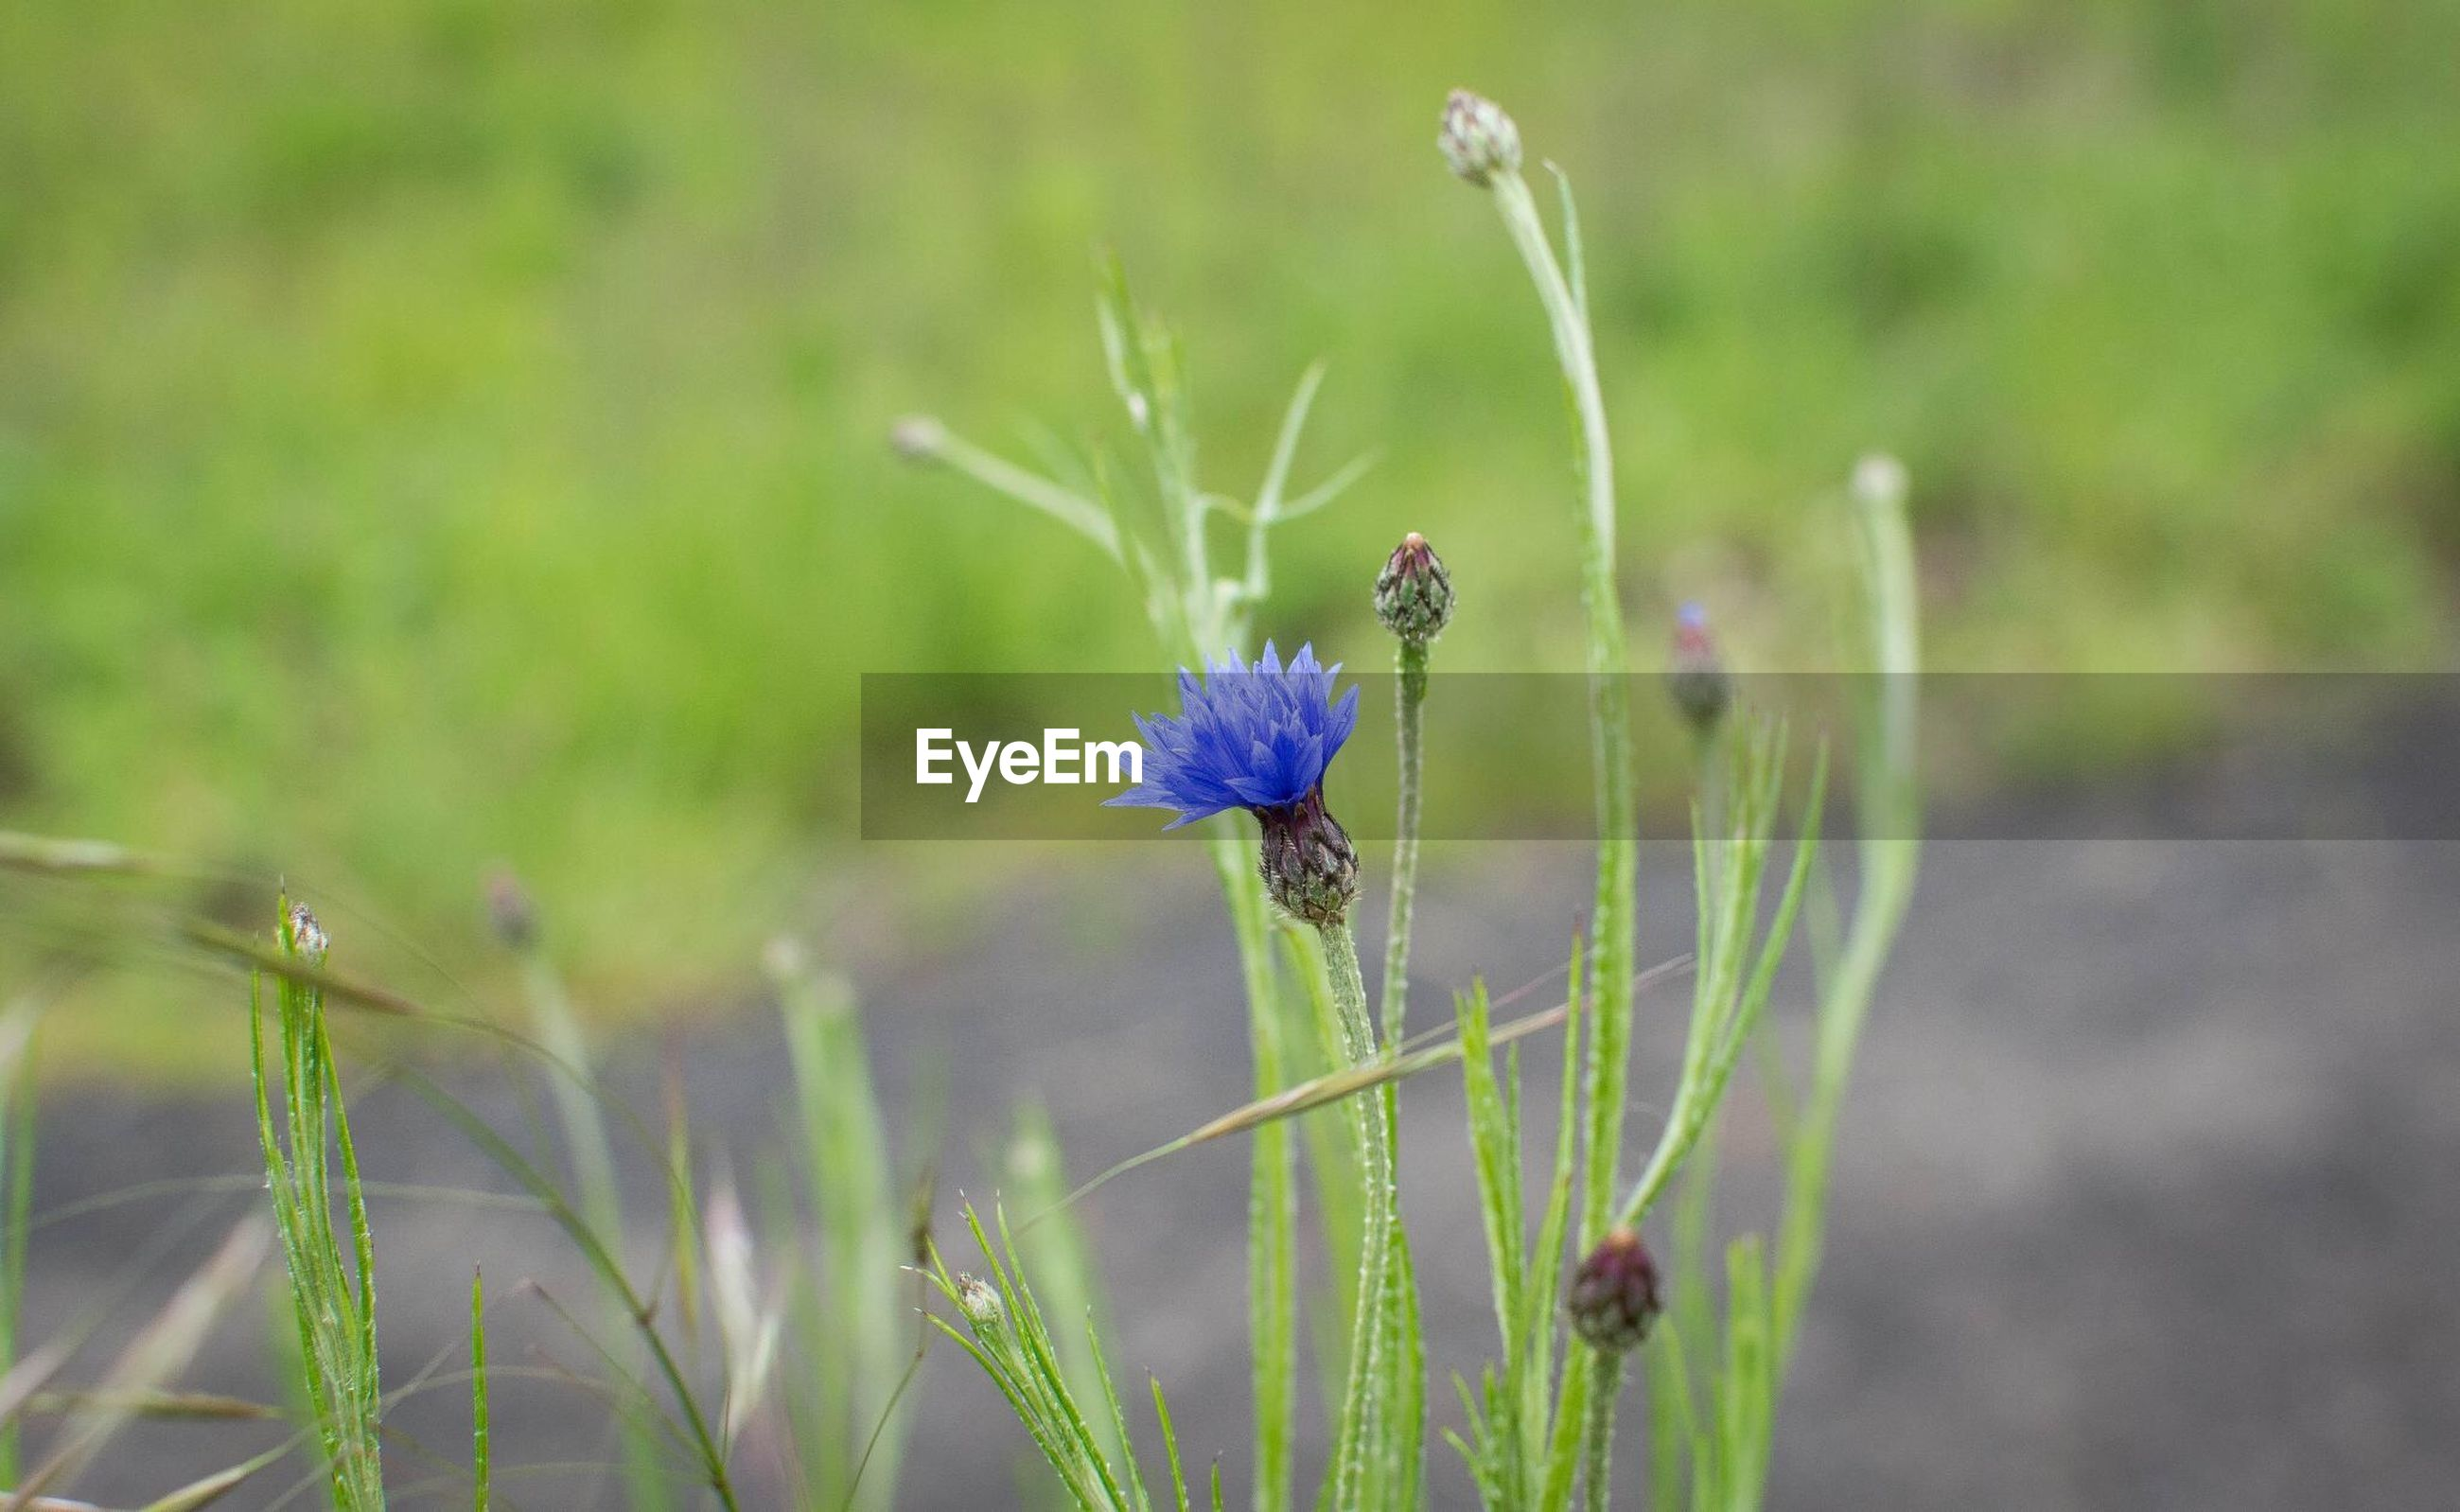 flower, animal themes, one animal, insect, animals in the wild, wildlife, fragility, focus on foreground, growth, freshness, plant, close-up, beauty in nature, nature, purple, pollination, stem, selective focus, flower head, symbiotic relationship